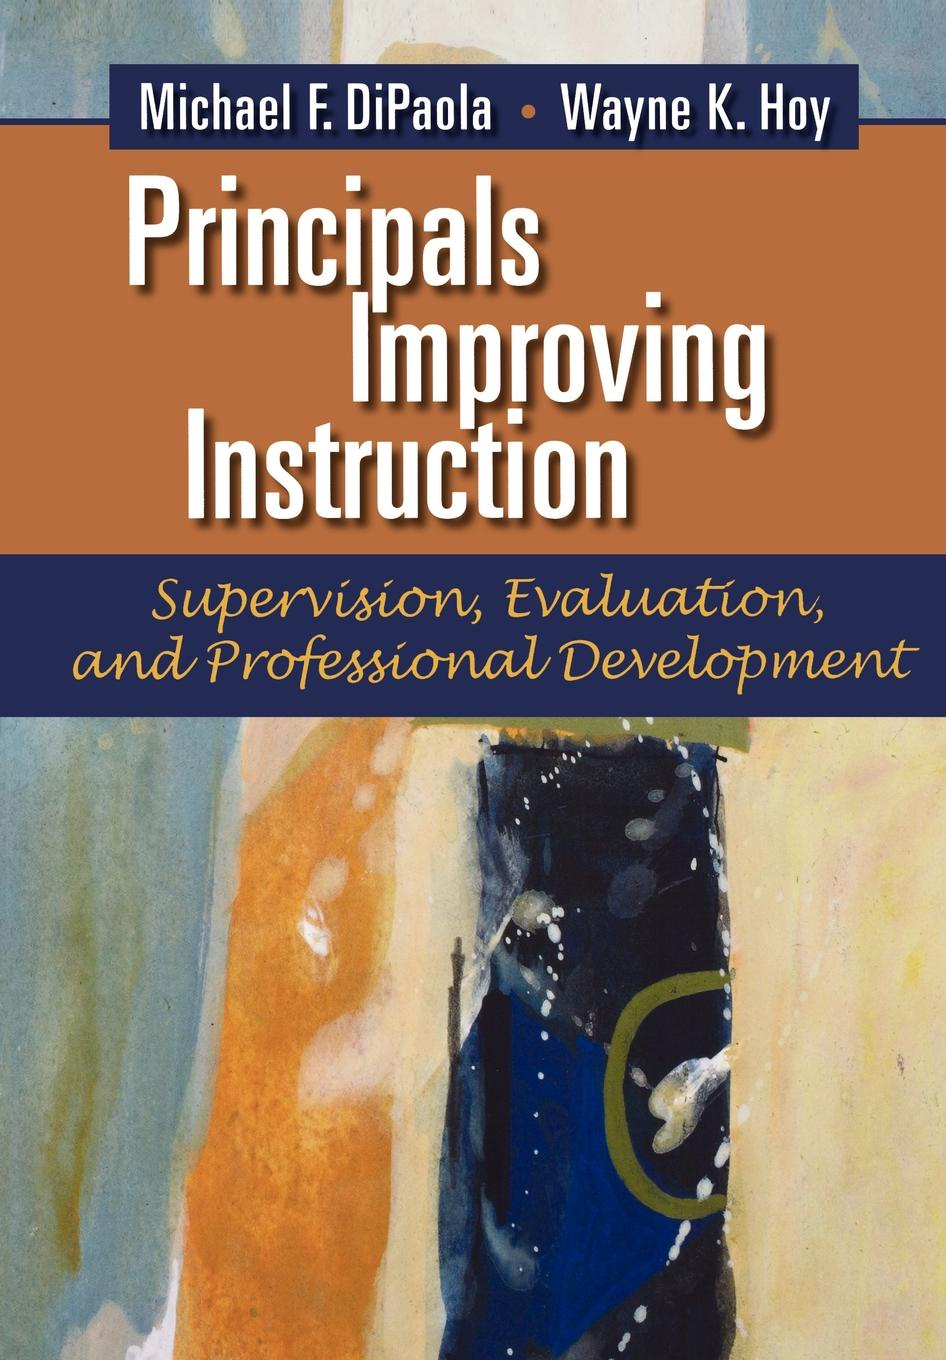 Фото - Michael F. DiPaola, Wayne K. Hoy Principals Improving Instruction Supervision, Evaluation, and Professional Development the influence of head teacher evaluation on their professional growth